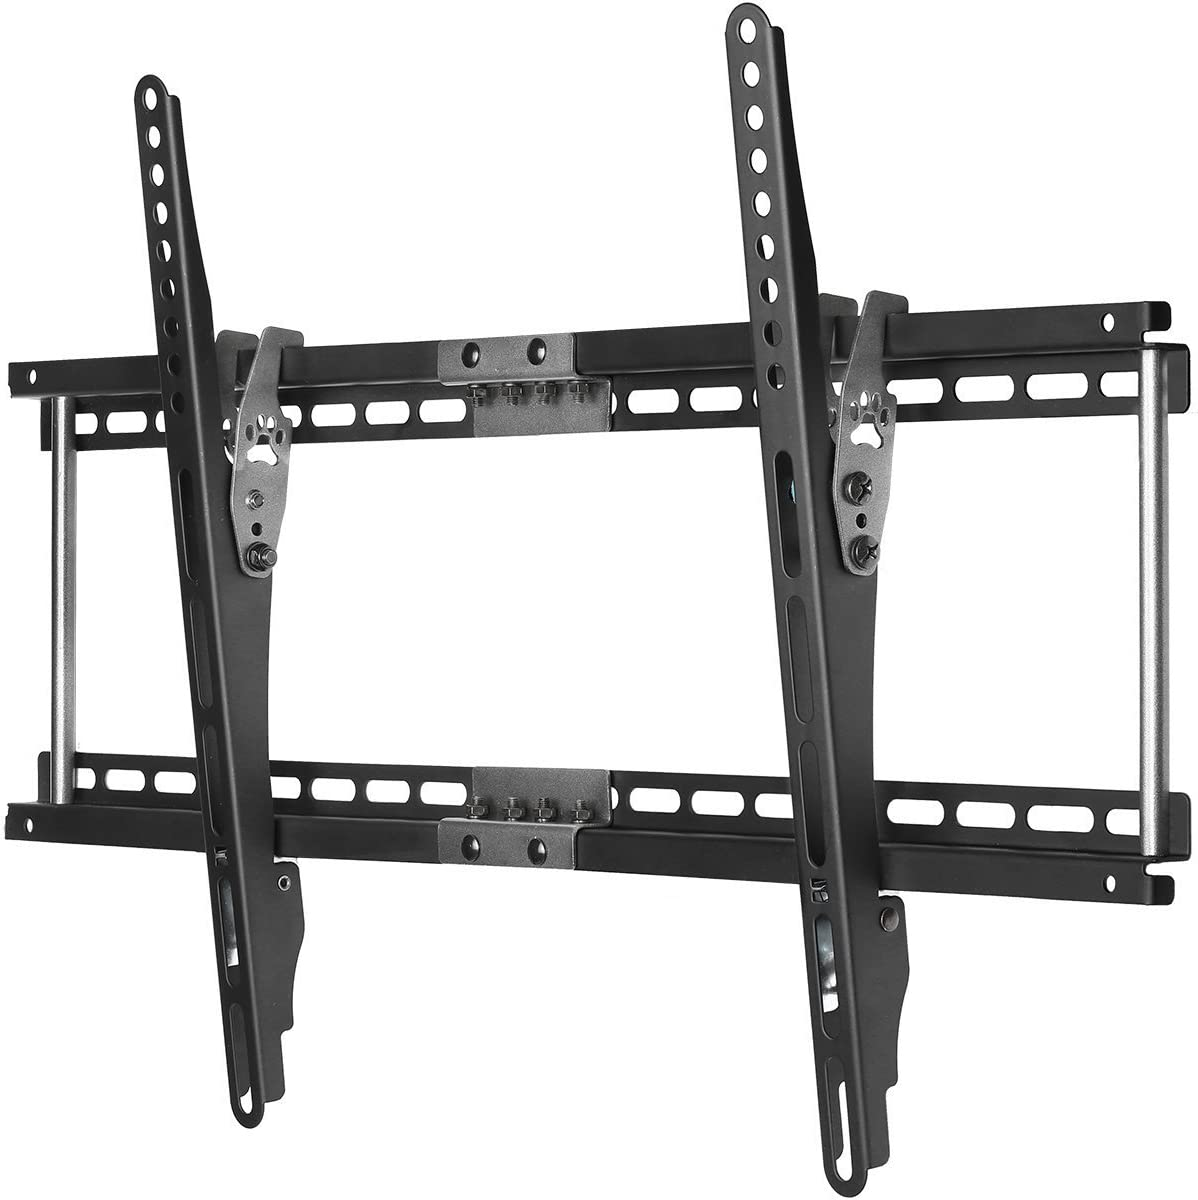 Black Adjustable Tilt Tilting Wall Mount Bracket for Sony Bravia KDL-40V5100 40 Inch LCD HDTV TV Television